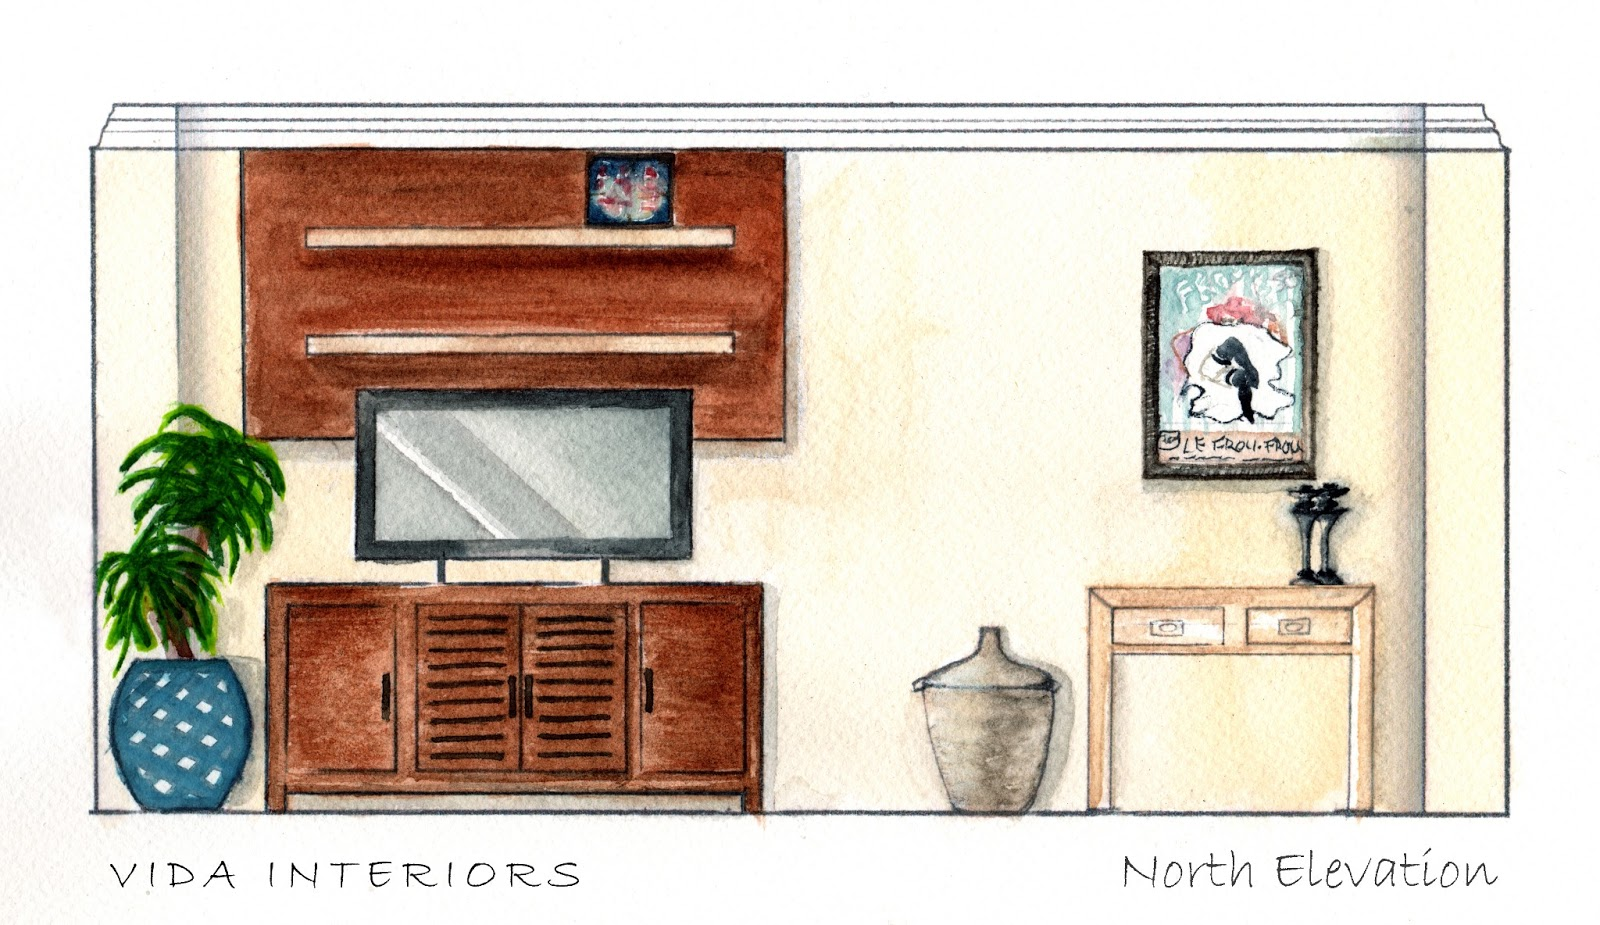 Vida 39 s think tank floor plan renderings designed for a tv pilot - Tv show small spaces design ...